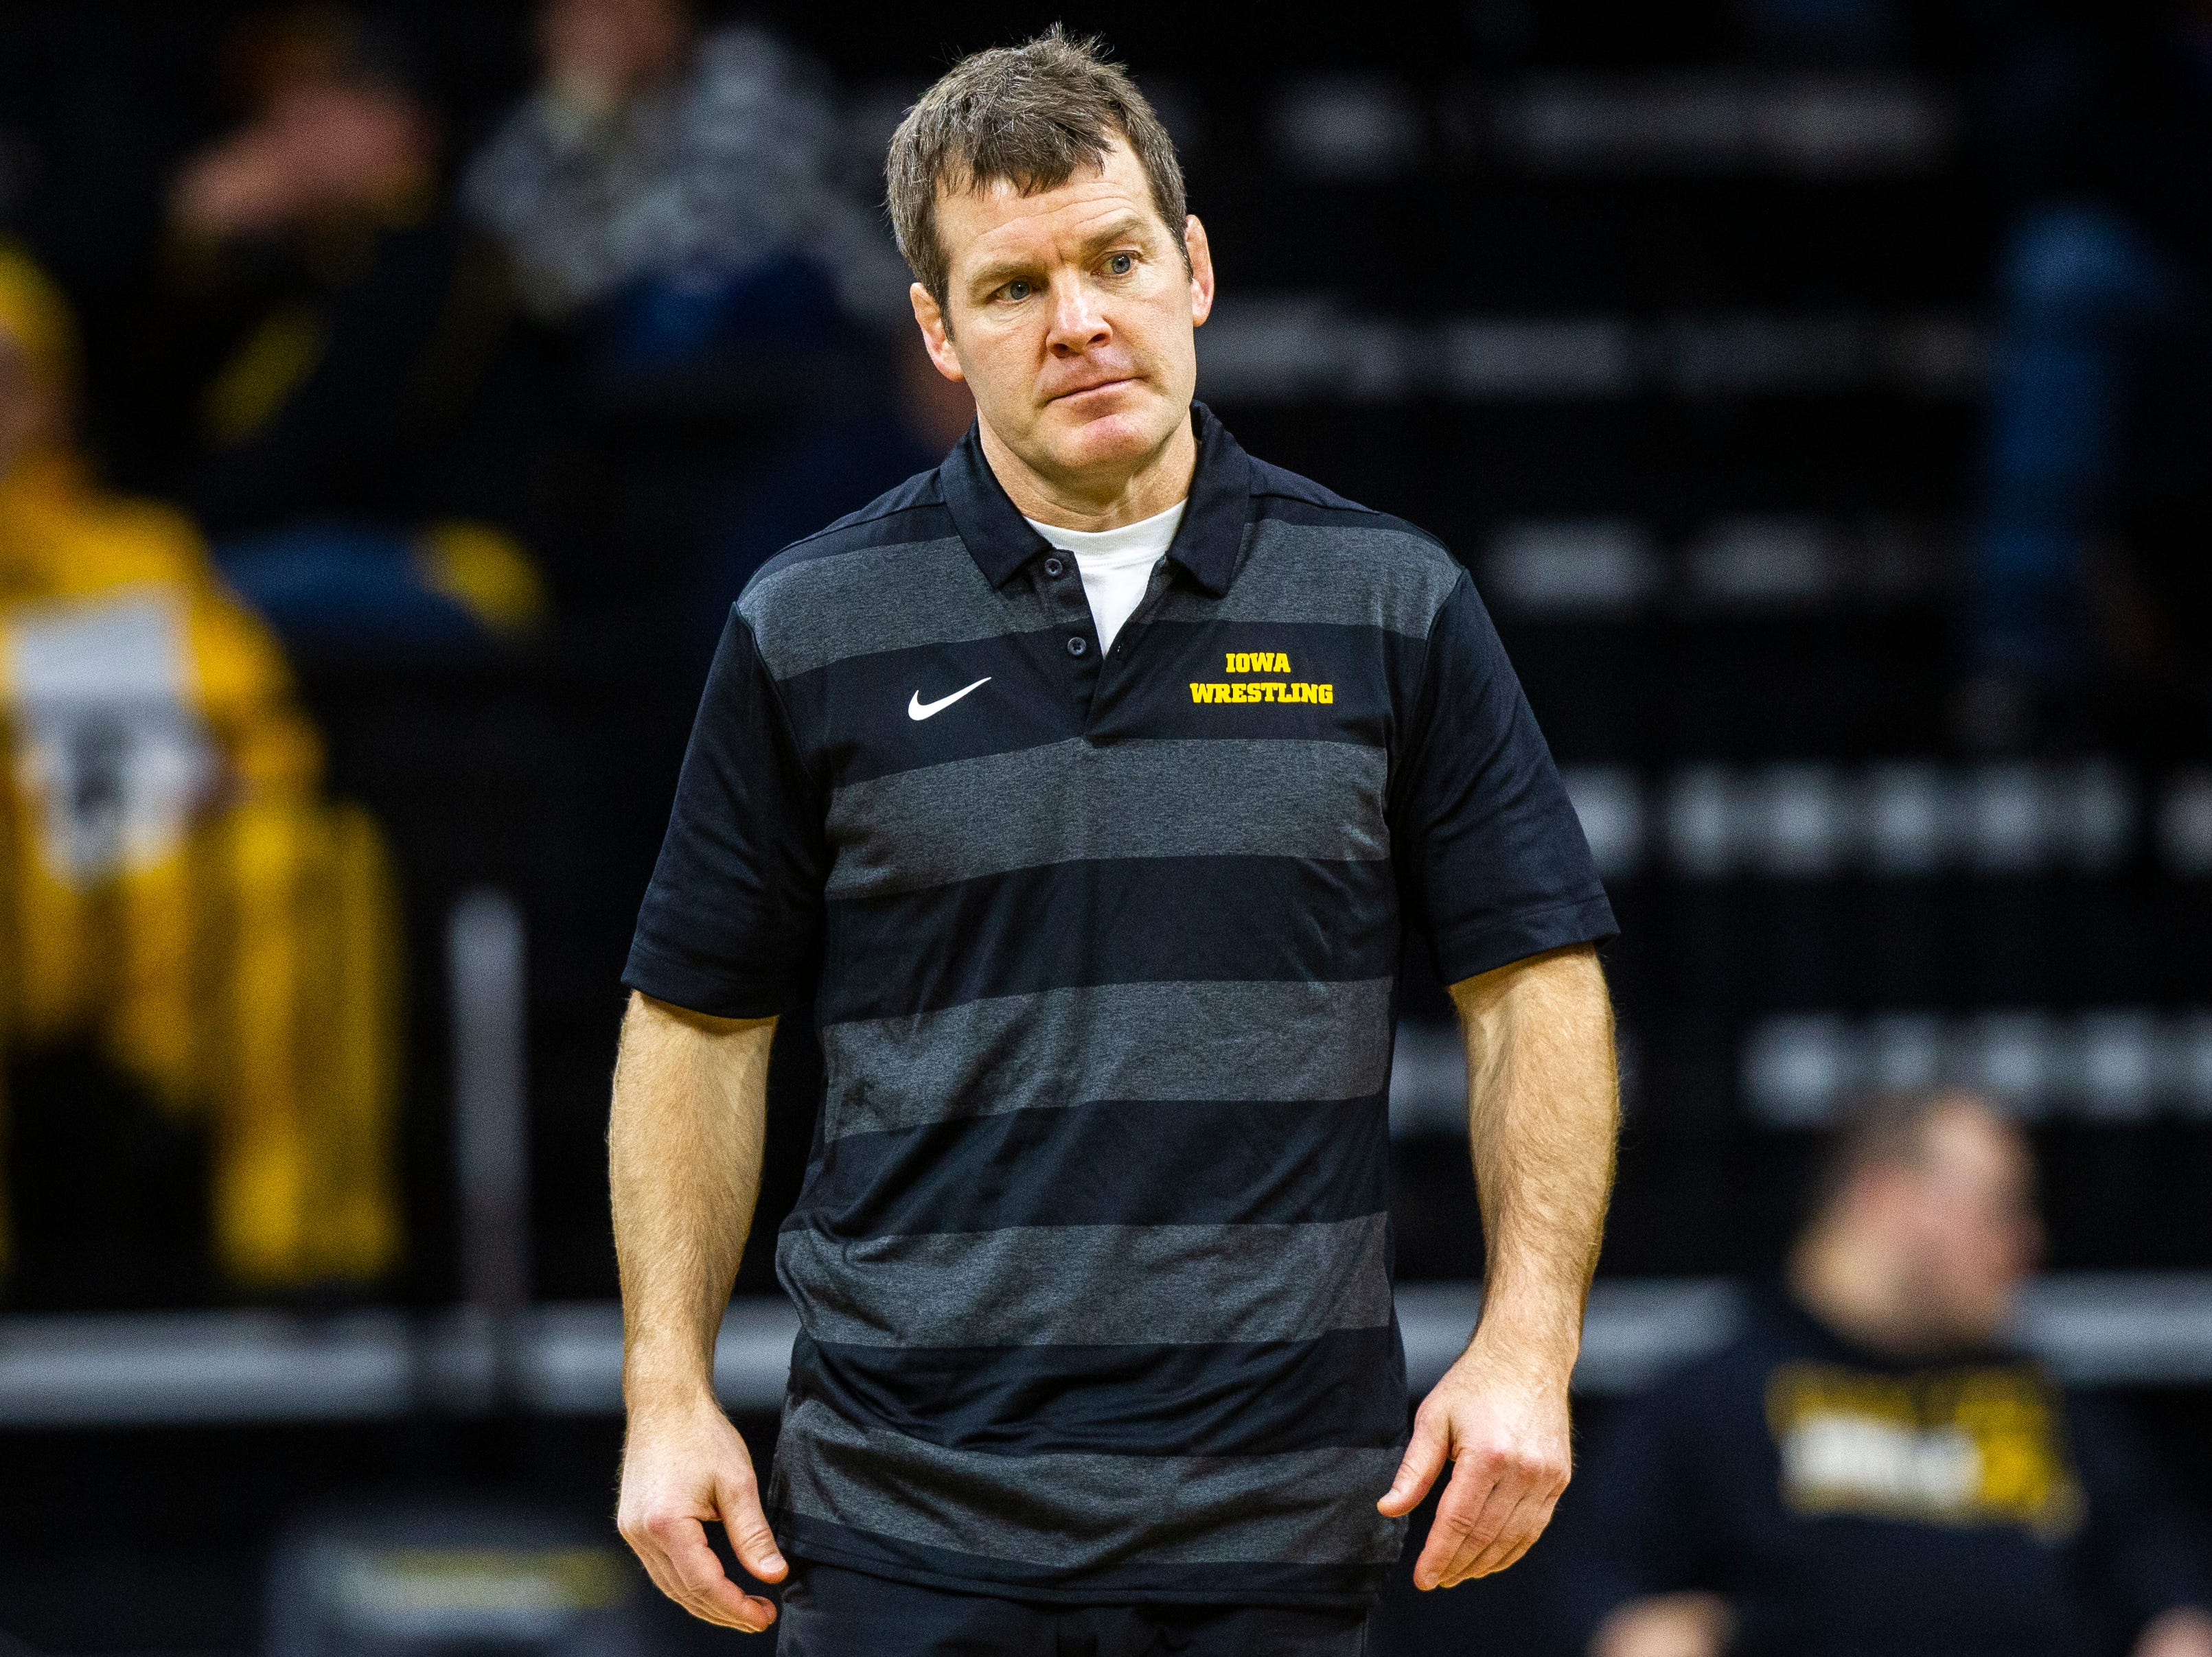 Iowa head coach Tom Brands looks on during an NCAA wrestle dual on Friday, Nov. 16, 2018, at Carver-Hawkeye Arena in Iowa City.